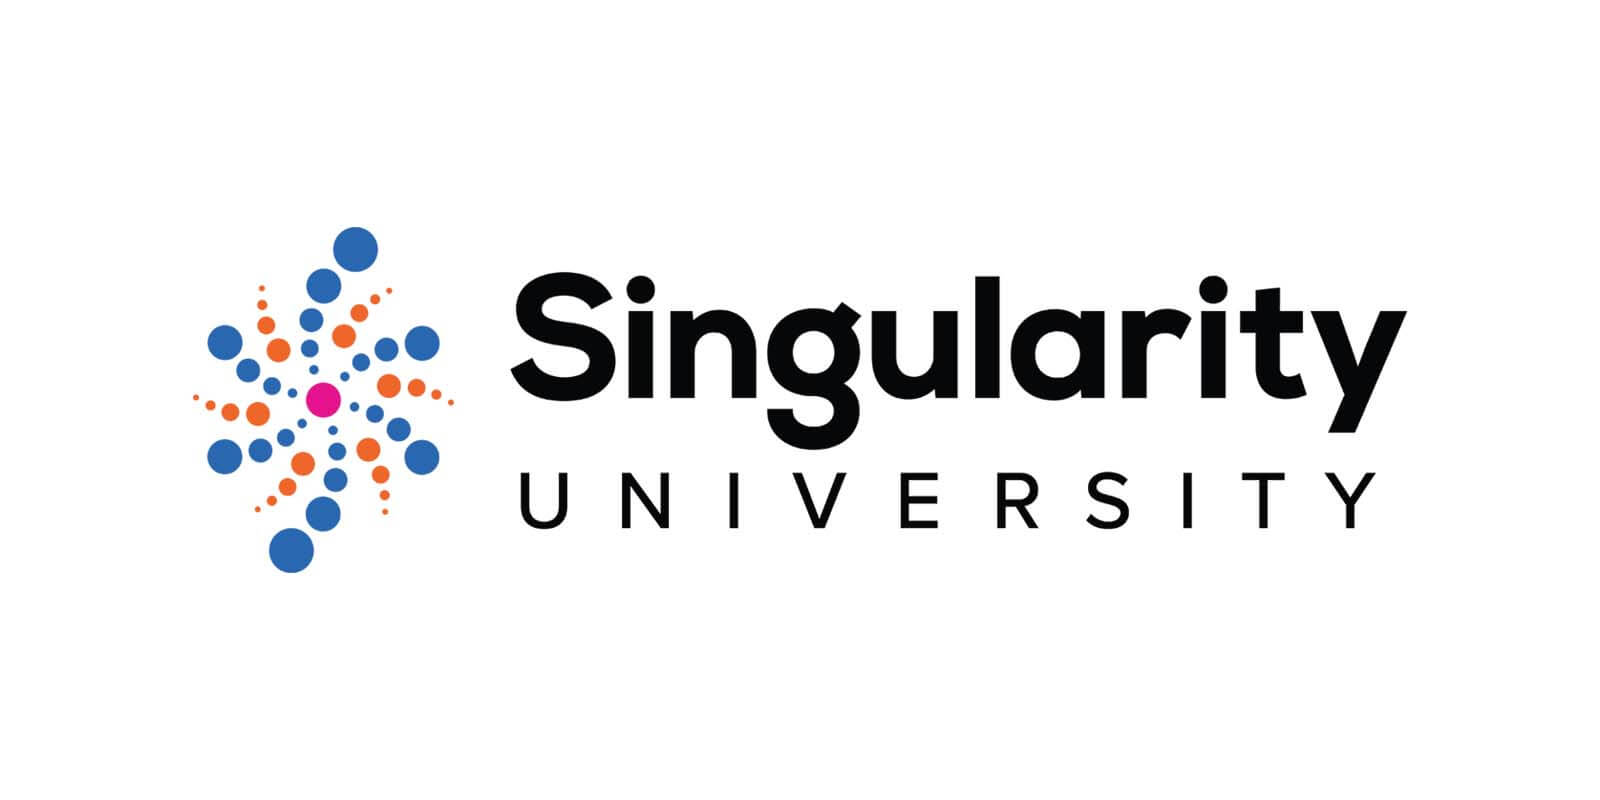 singularity-university-logo-social-share.jpg